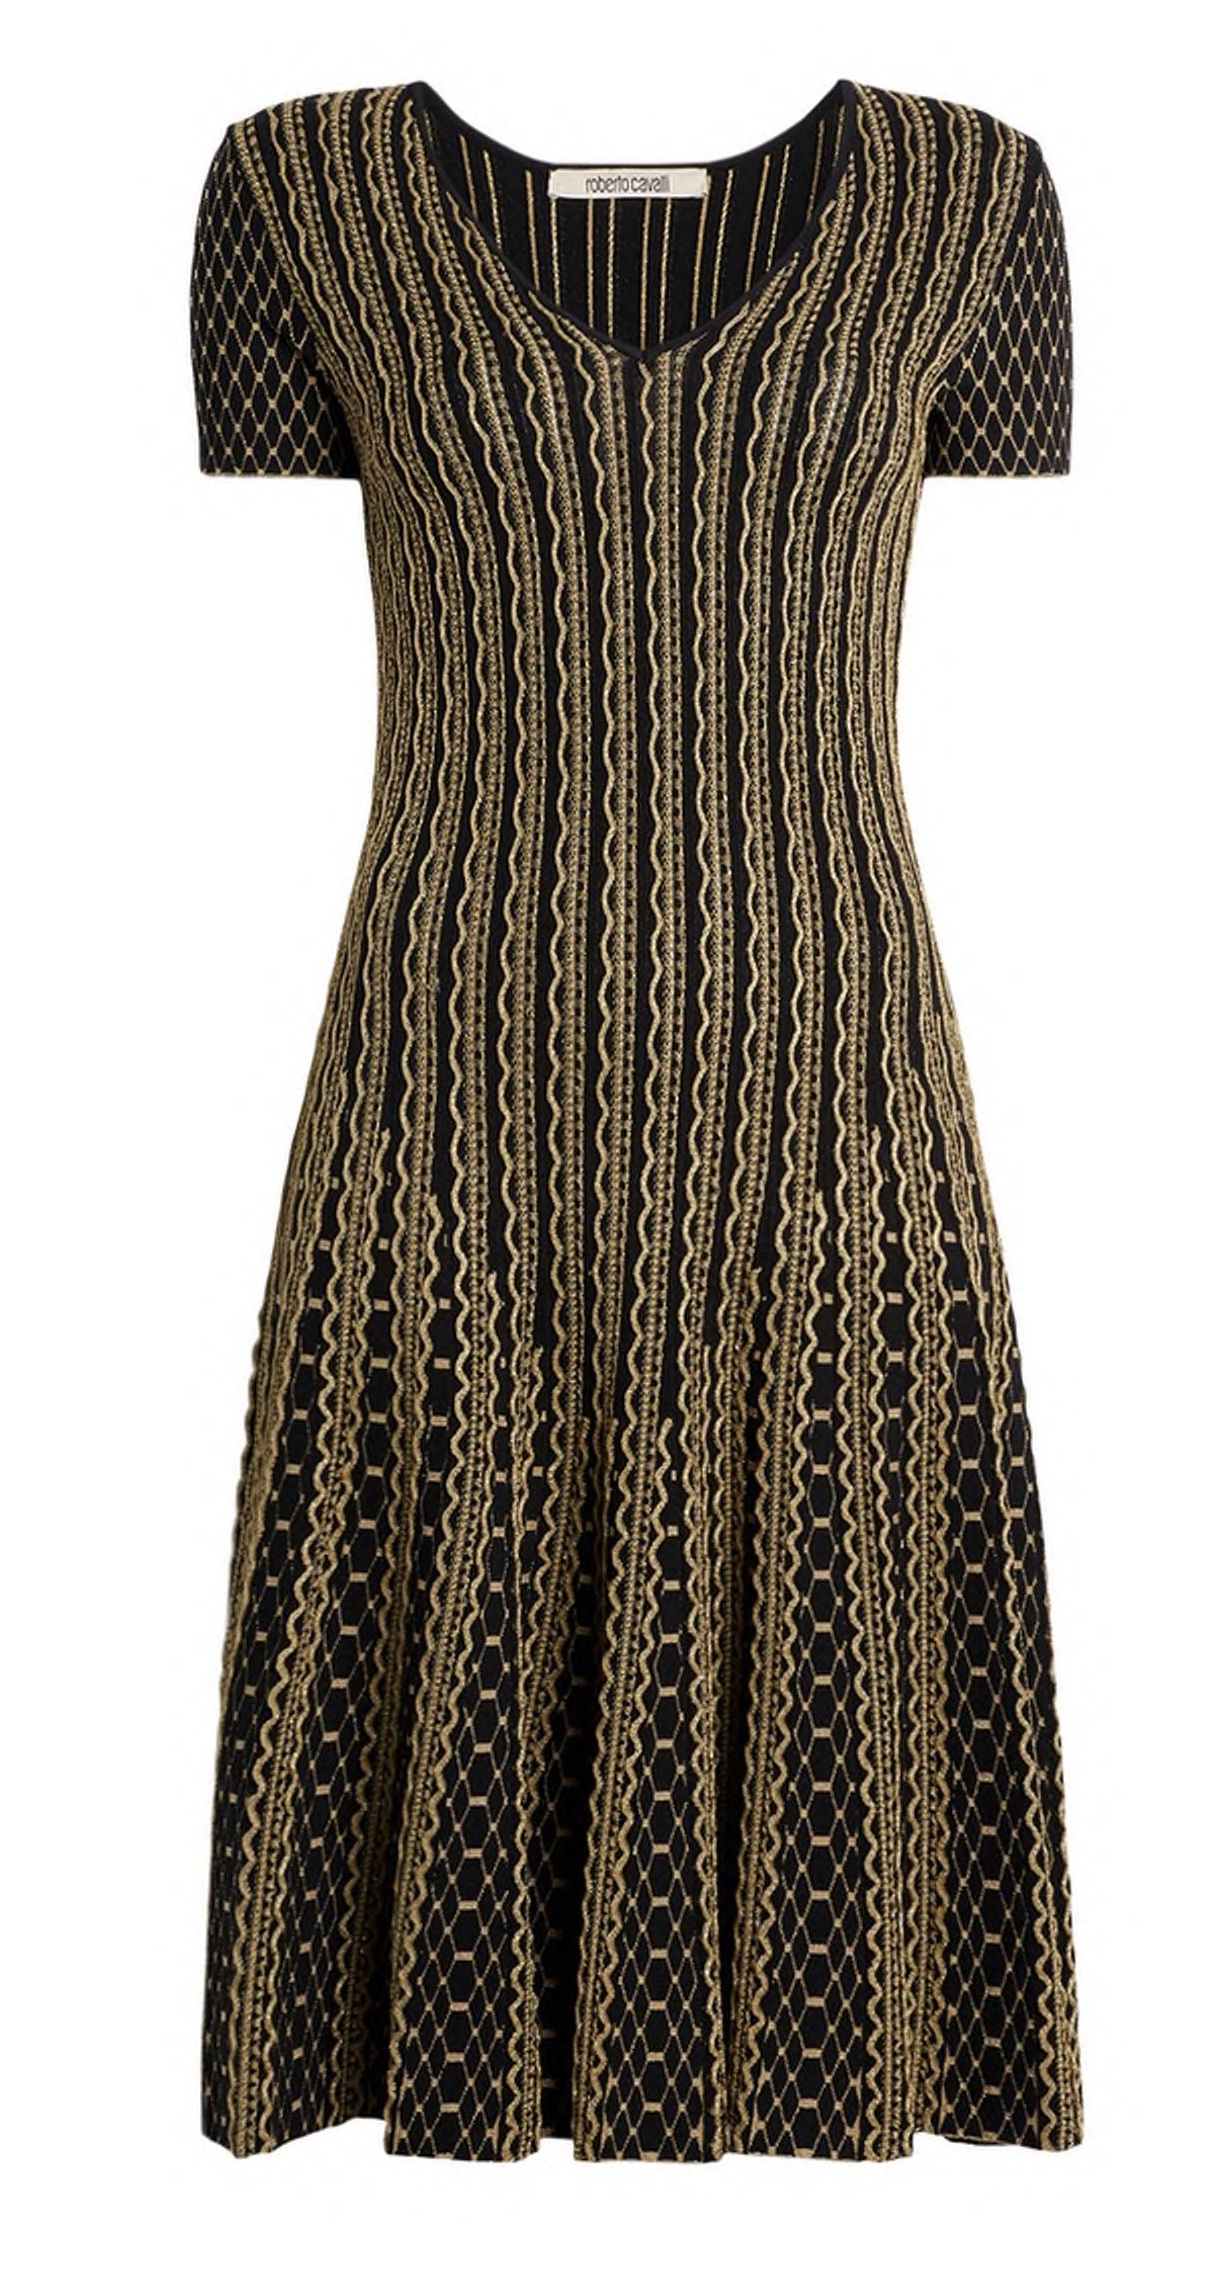 roberto-cavalli-metallic-jacquard-dress_13150669_15611966_2048.jpg